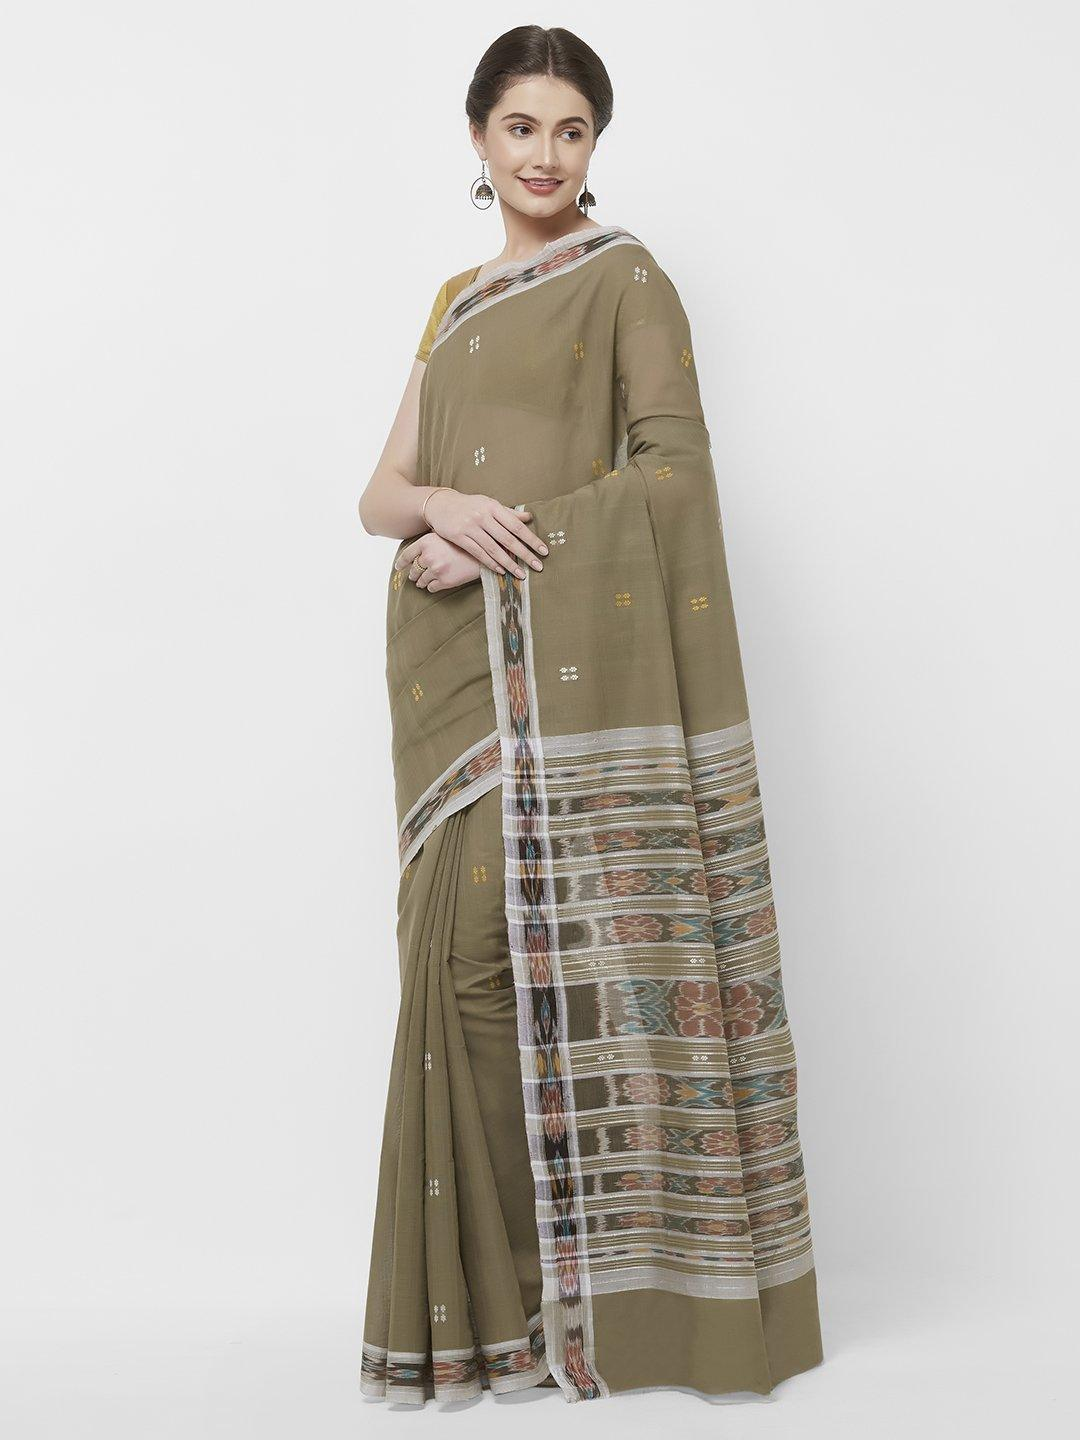 CraftsCollection.in -Grey Odisha Cotton Saree with matching Sambalpuri Blouse